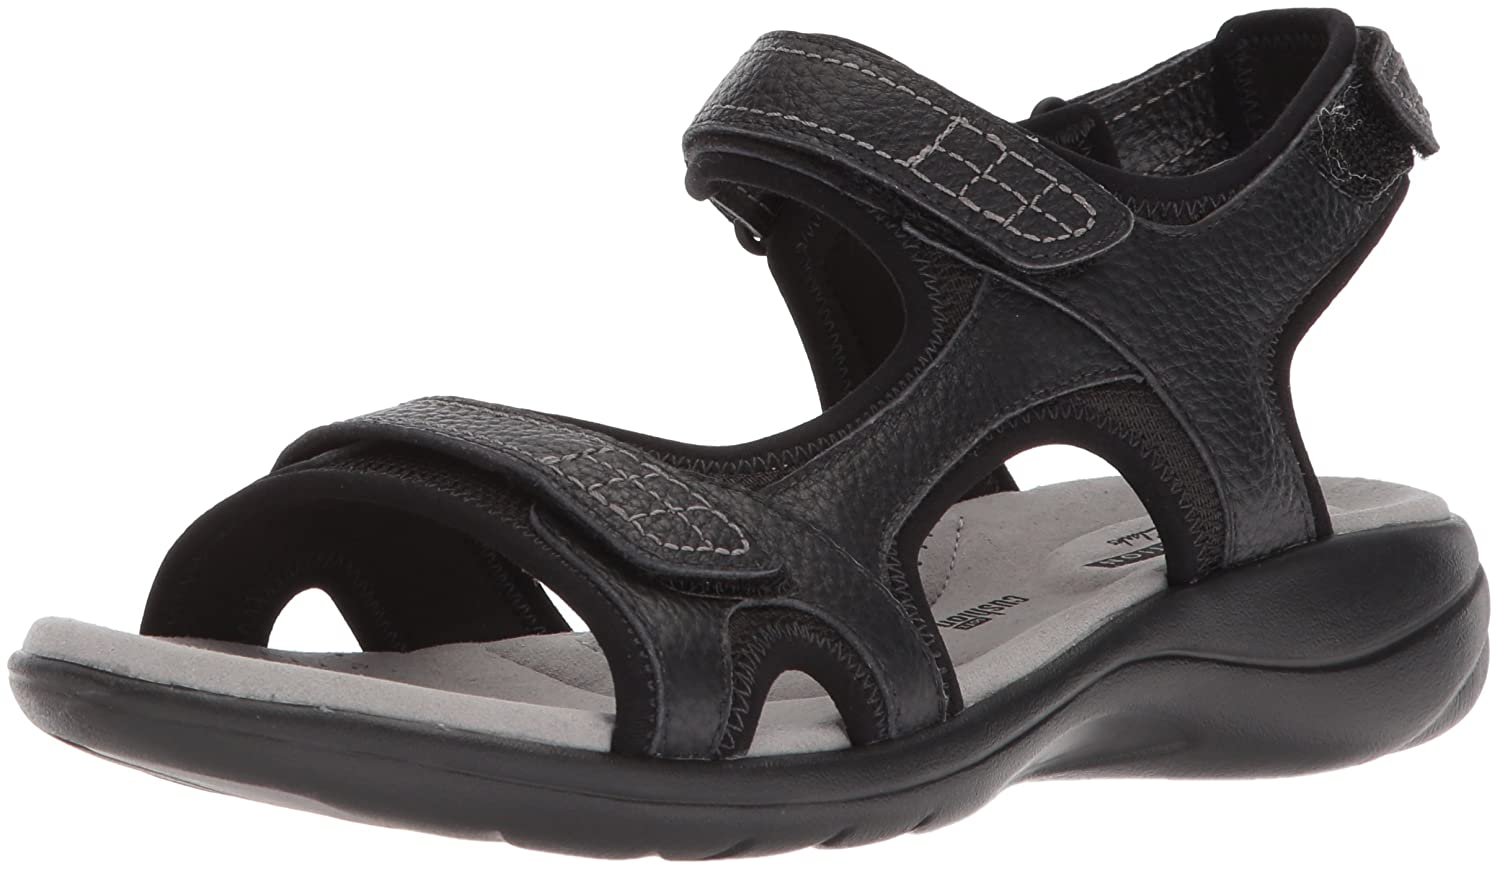 CLARKS Women's Saylie W Jade Sandal B074CHWDWH 7.5 W Saylie US|Black Tumbled Leather a472ed